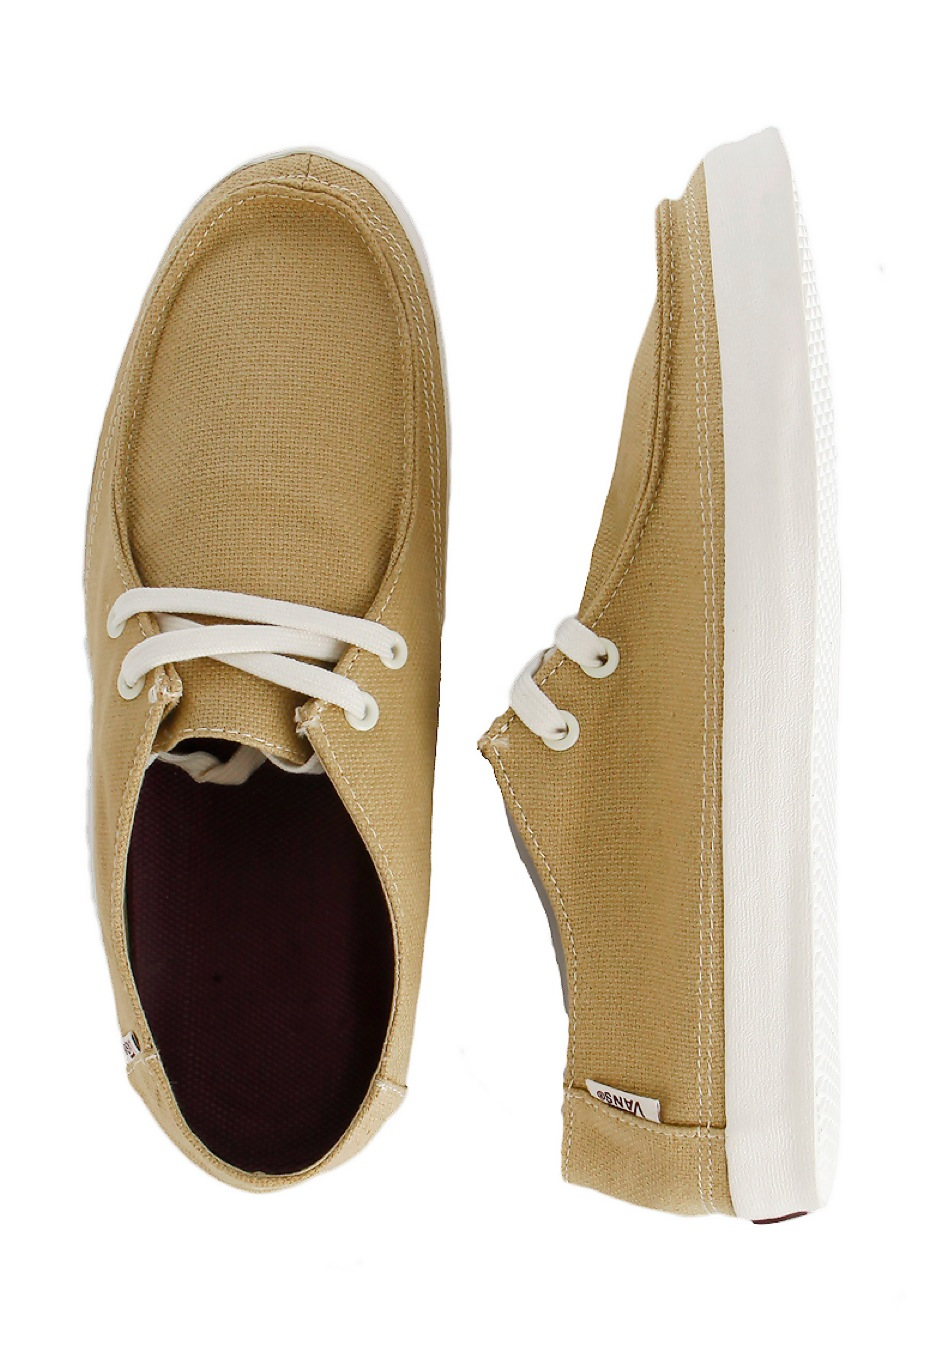 ef50c8f256d Vans - Rata Vulc Hemp Khaki - Shoes - Impericon.com UK